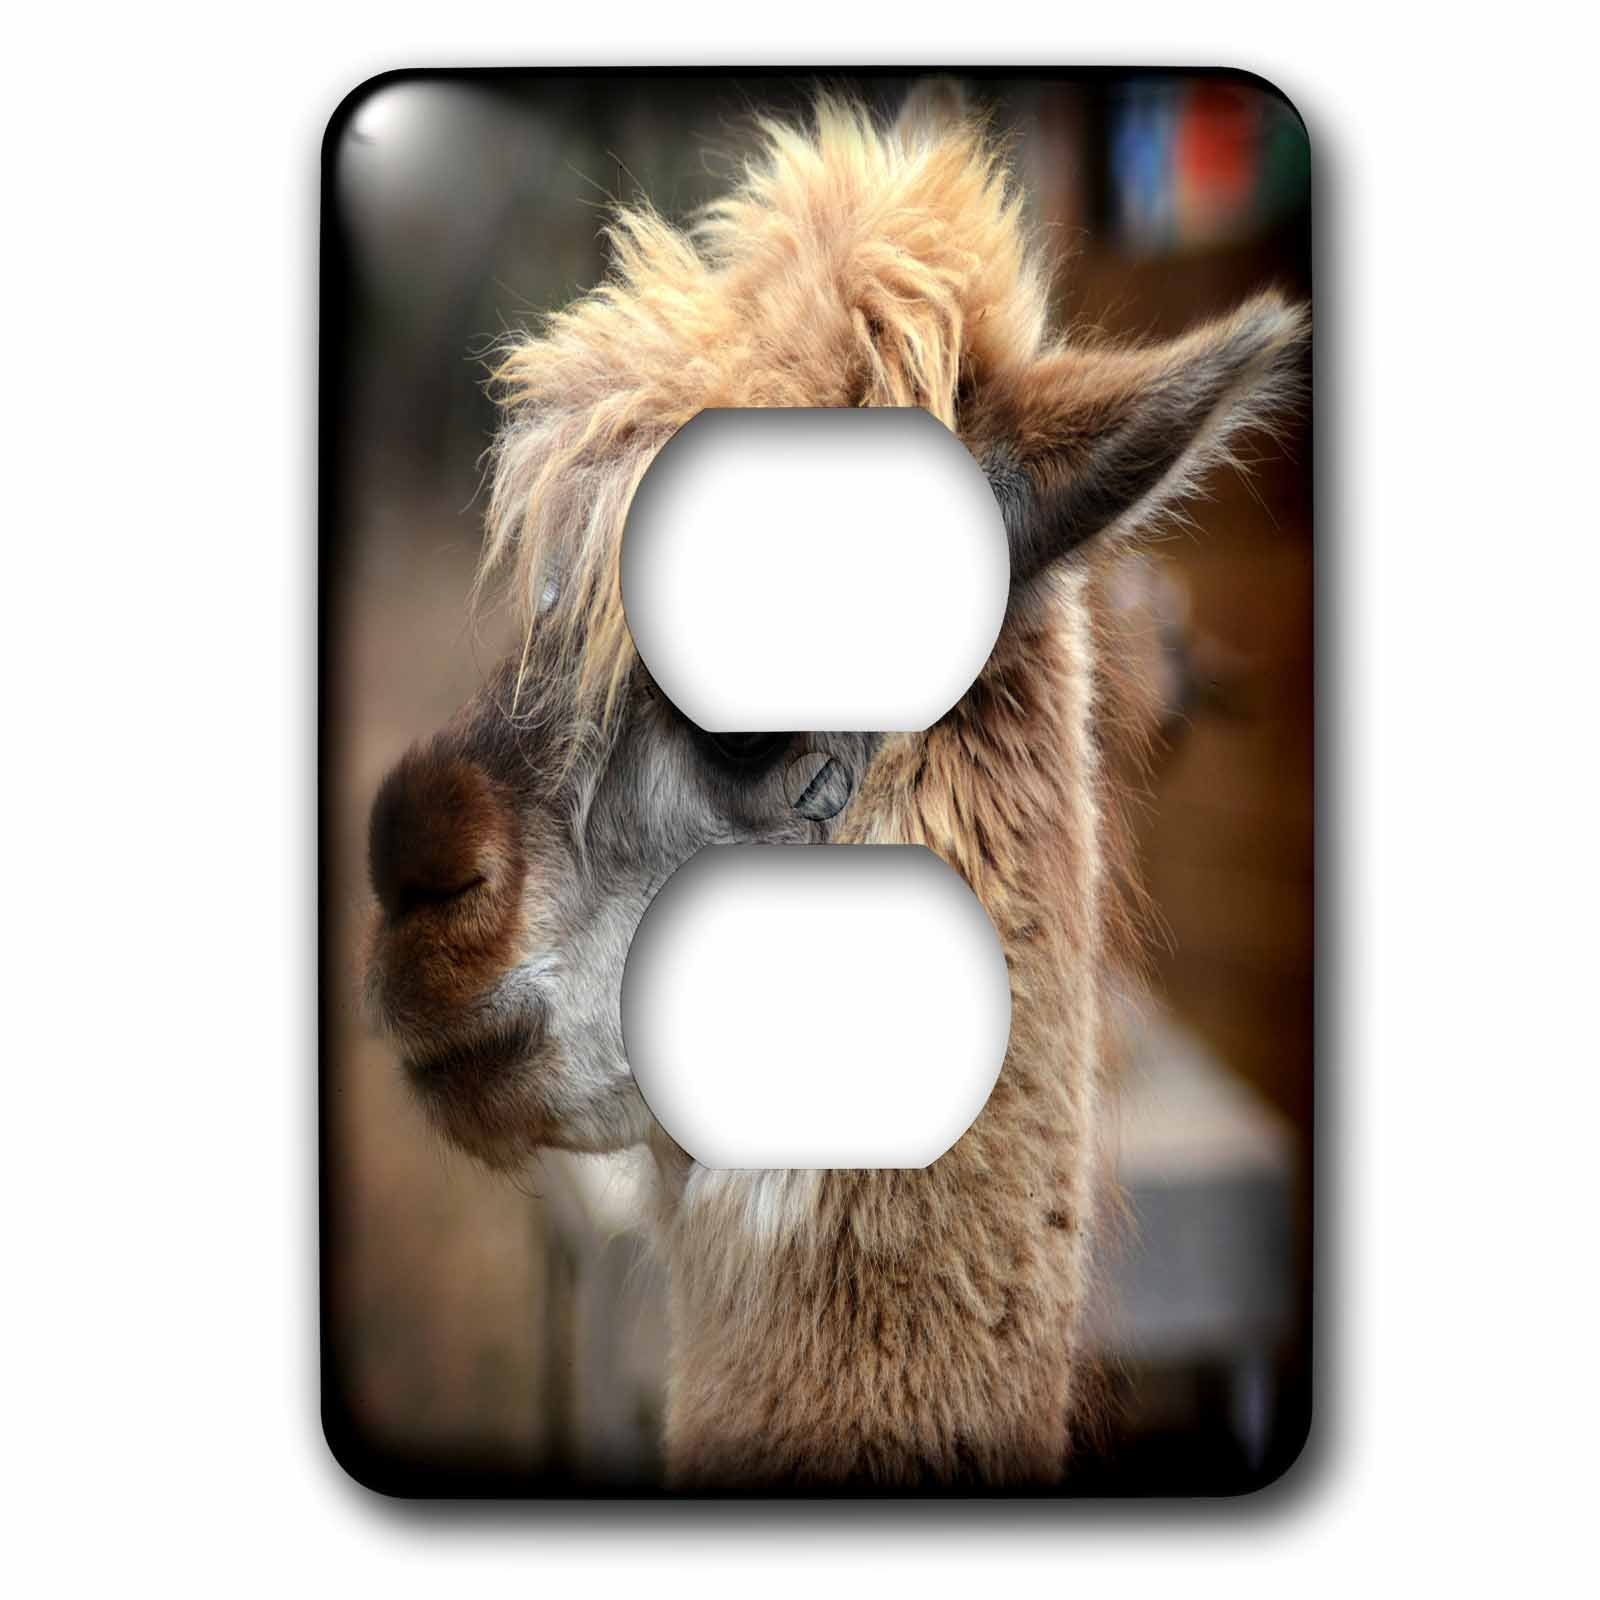 3dRose WhiteOaks Photography and Artwork - Lamas - Seriously the Face is a photo of a lama that is looking serious - Light Switch Covers - 2 plug outlet cover (lsp_265348_6)